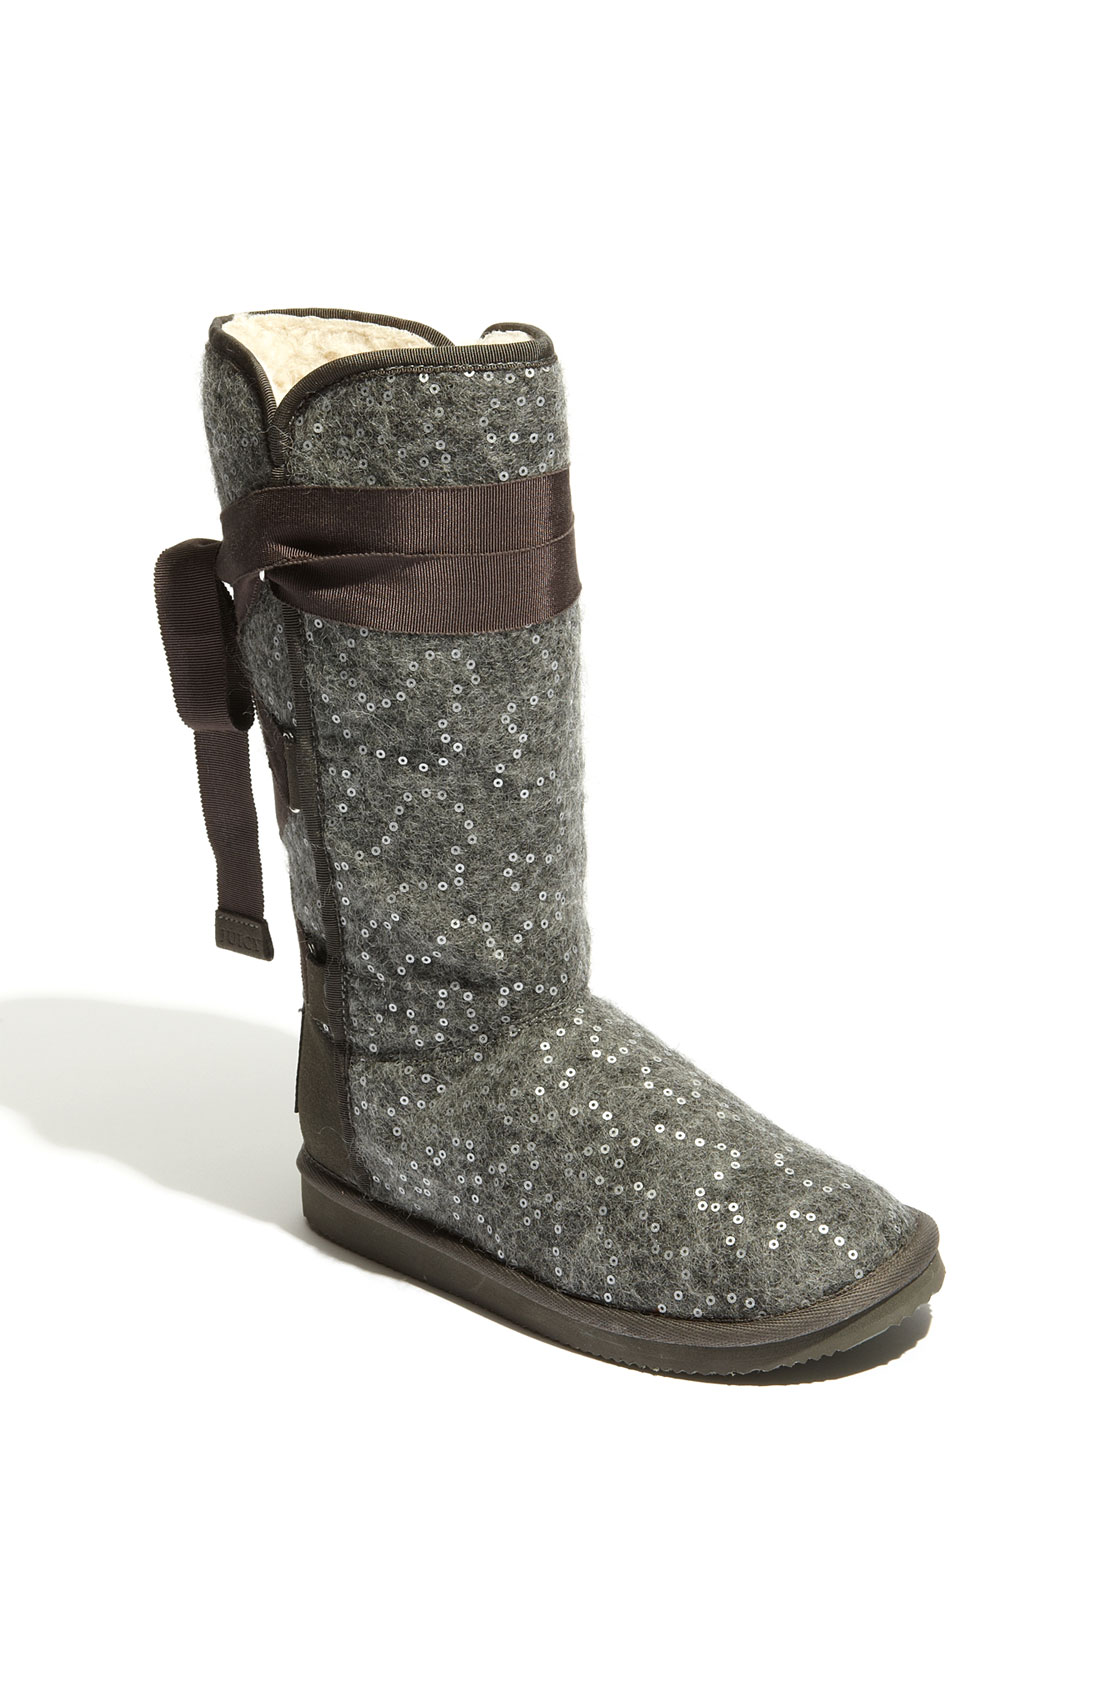 Juicy Couture Marley Sequined Winter Boot In Gray Grey